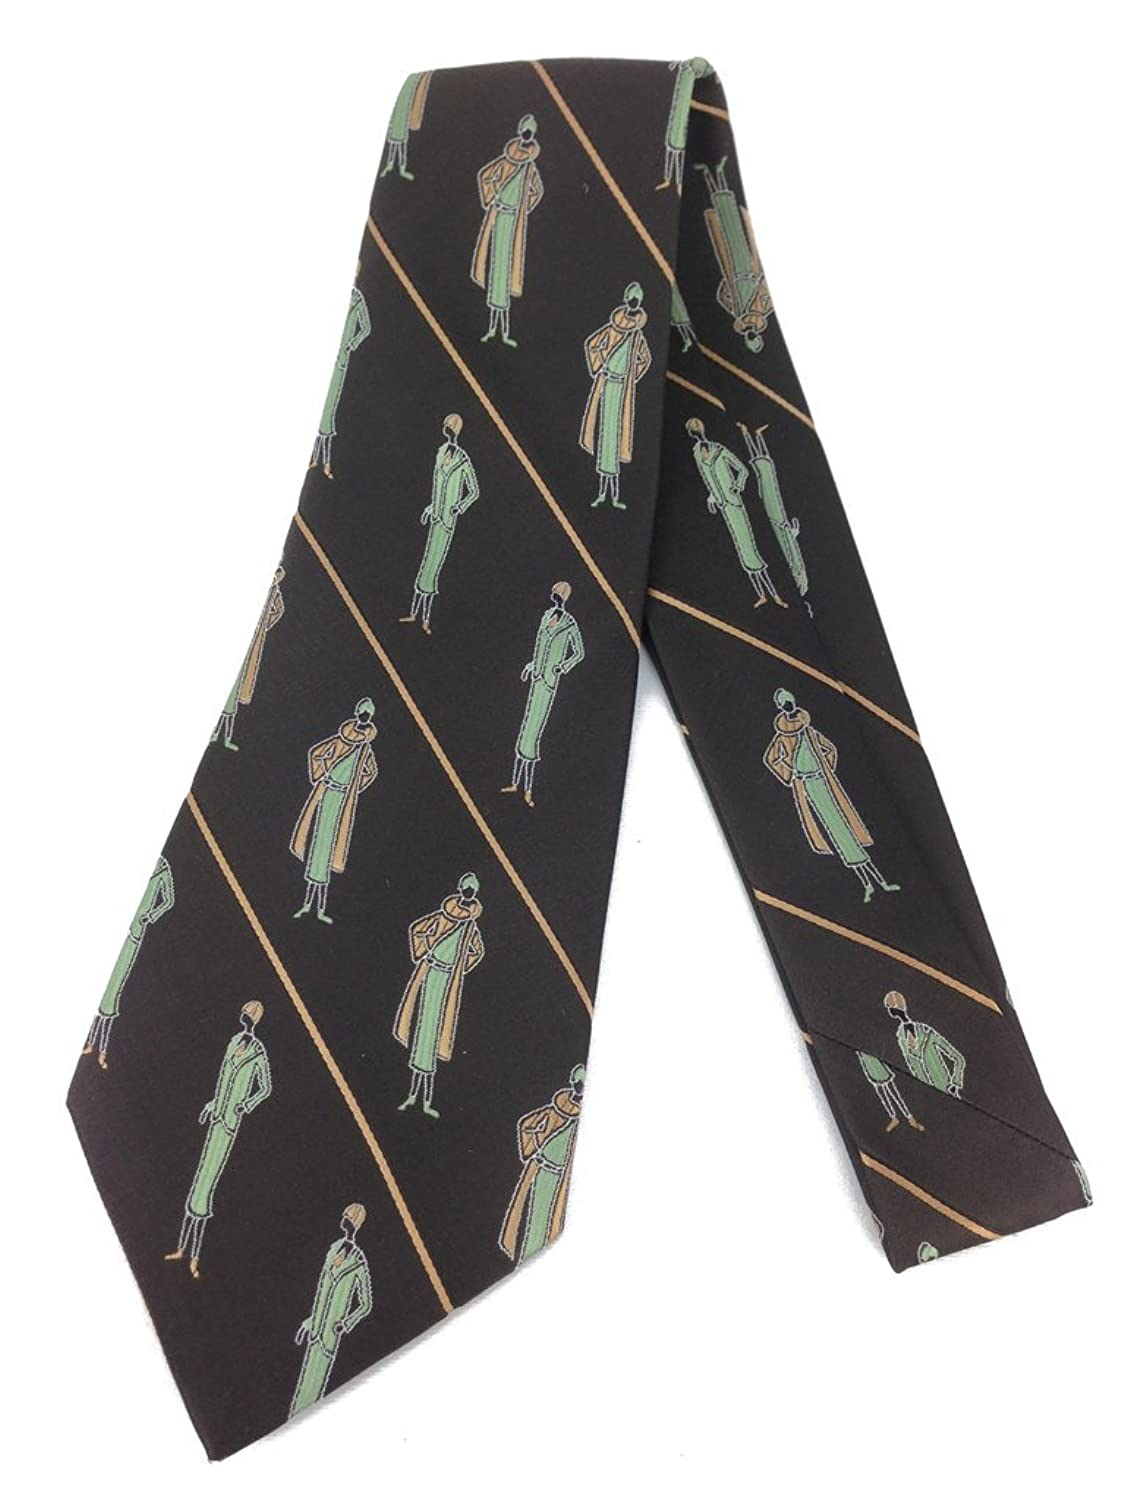 New 1930s Mens Fashion Ties Lady Art Deco Vintage Tie - Jacquard Weave Wide Kipper Necktie Stripe $24.95 AT vintagedancer.com